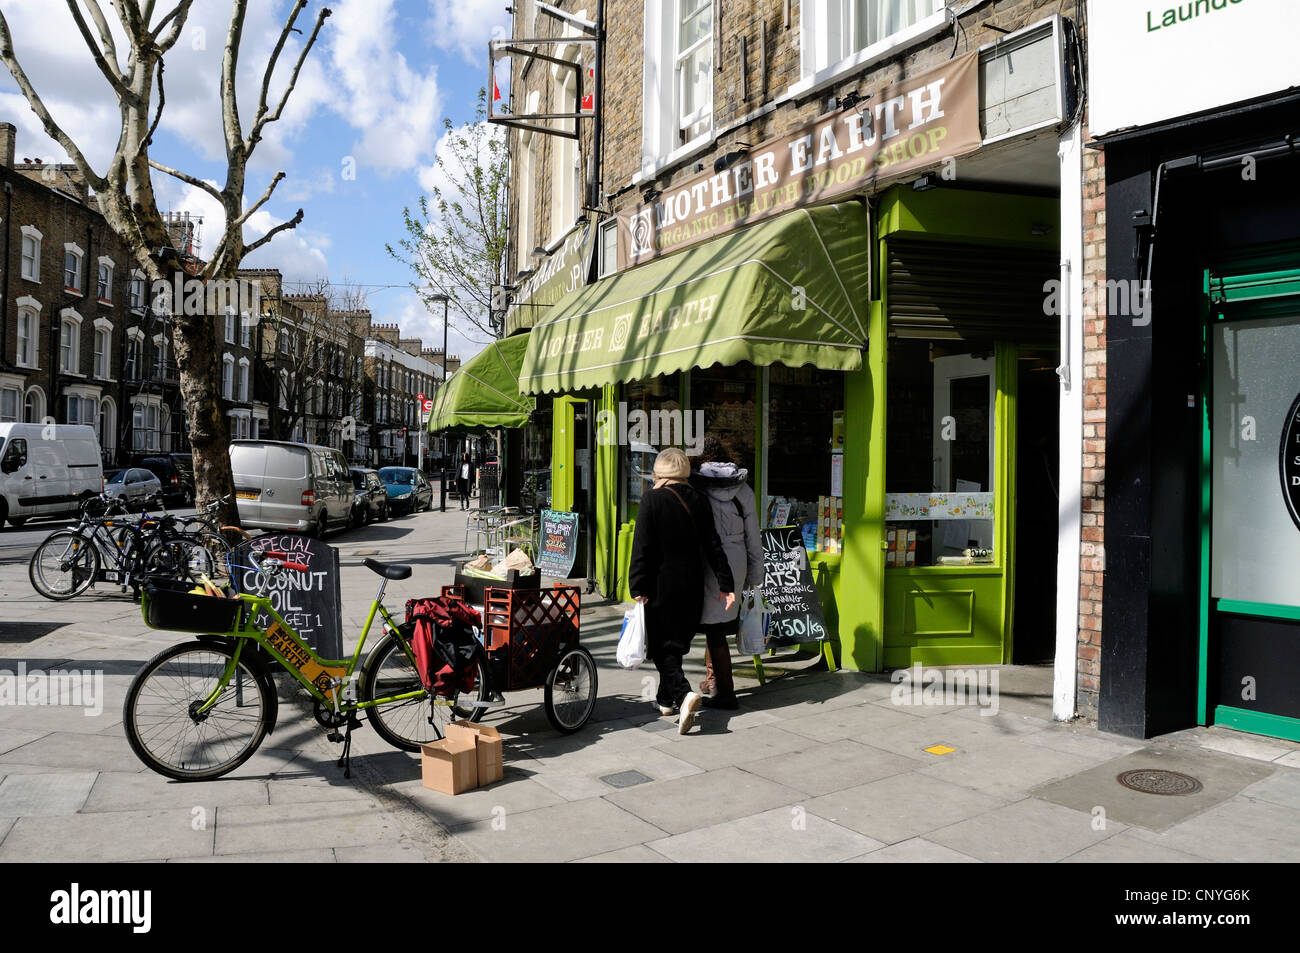 Mother Earth Organic Health Food Shop With Delivery Bike In